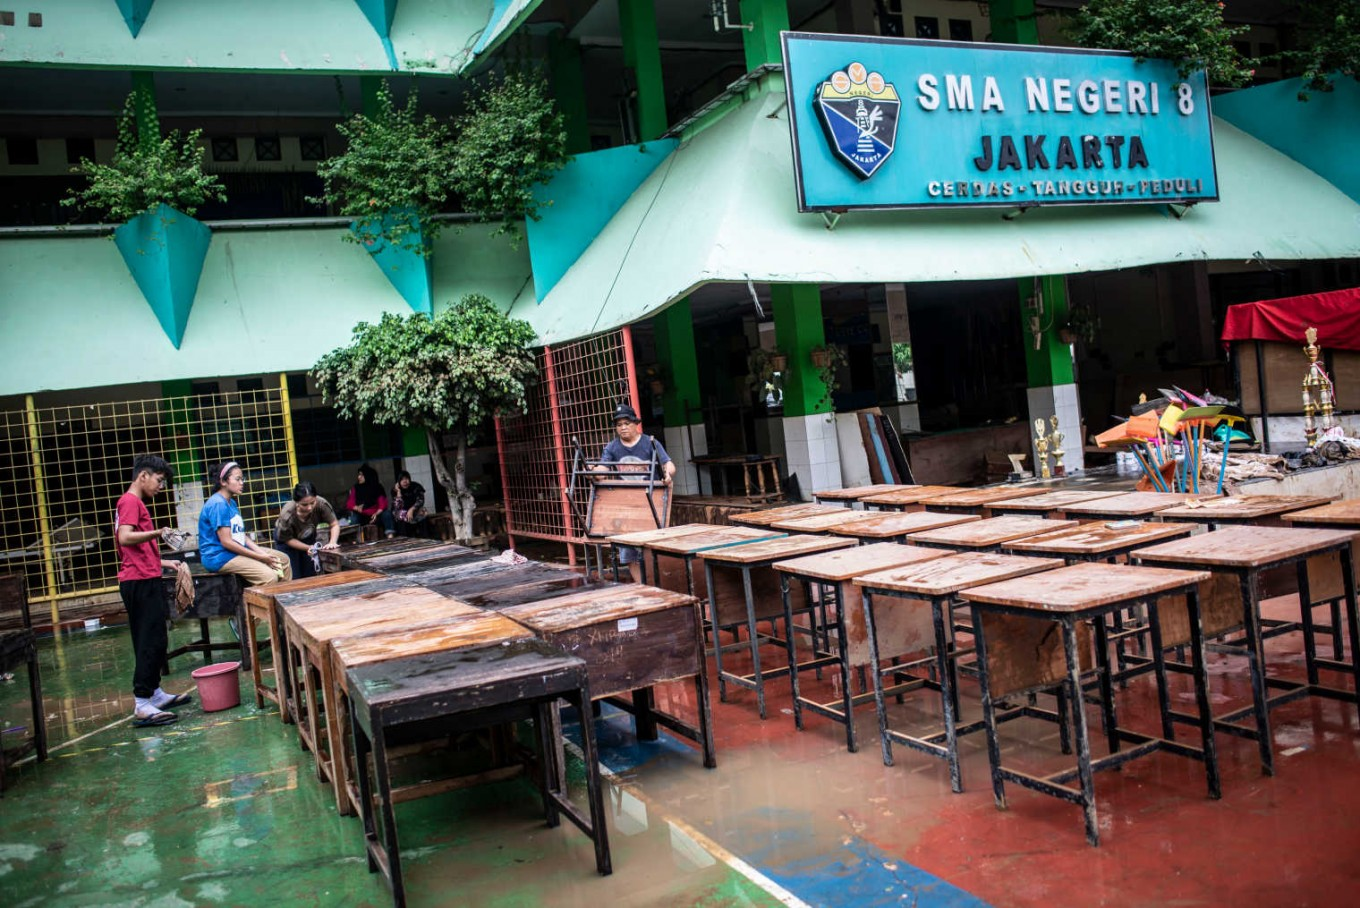 Casual Monday: Students allowed to forego uniforms as schools set to reopen after floods